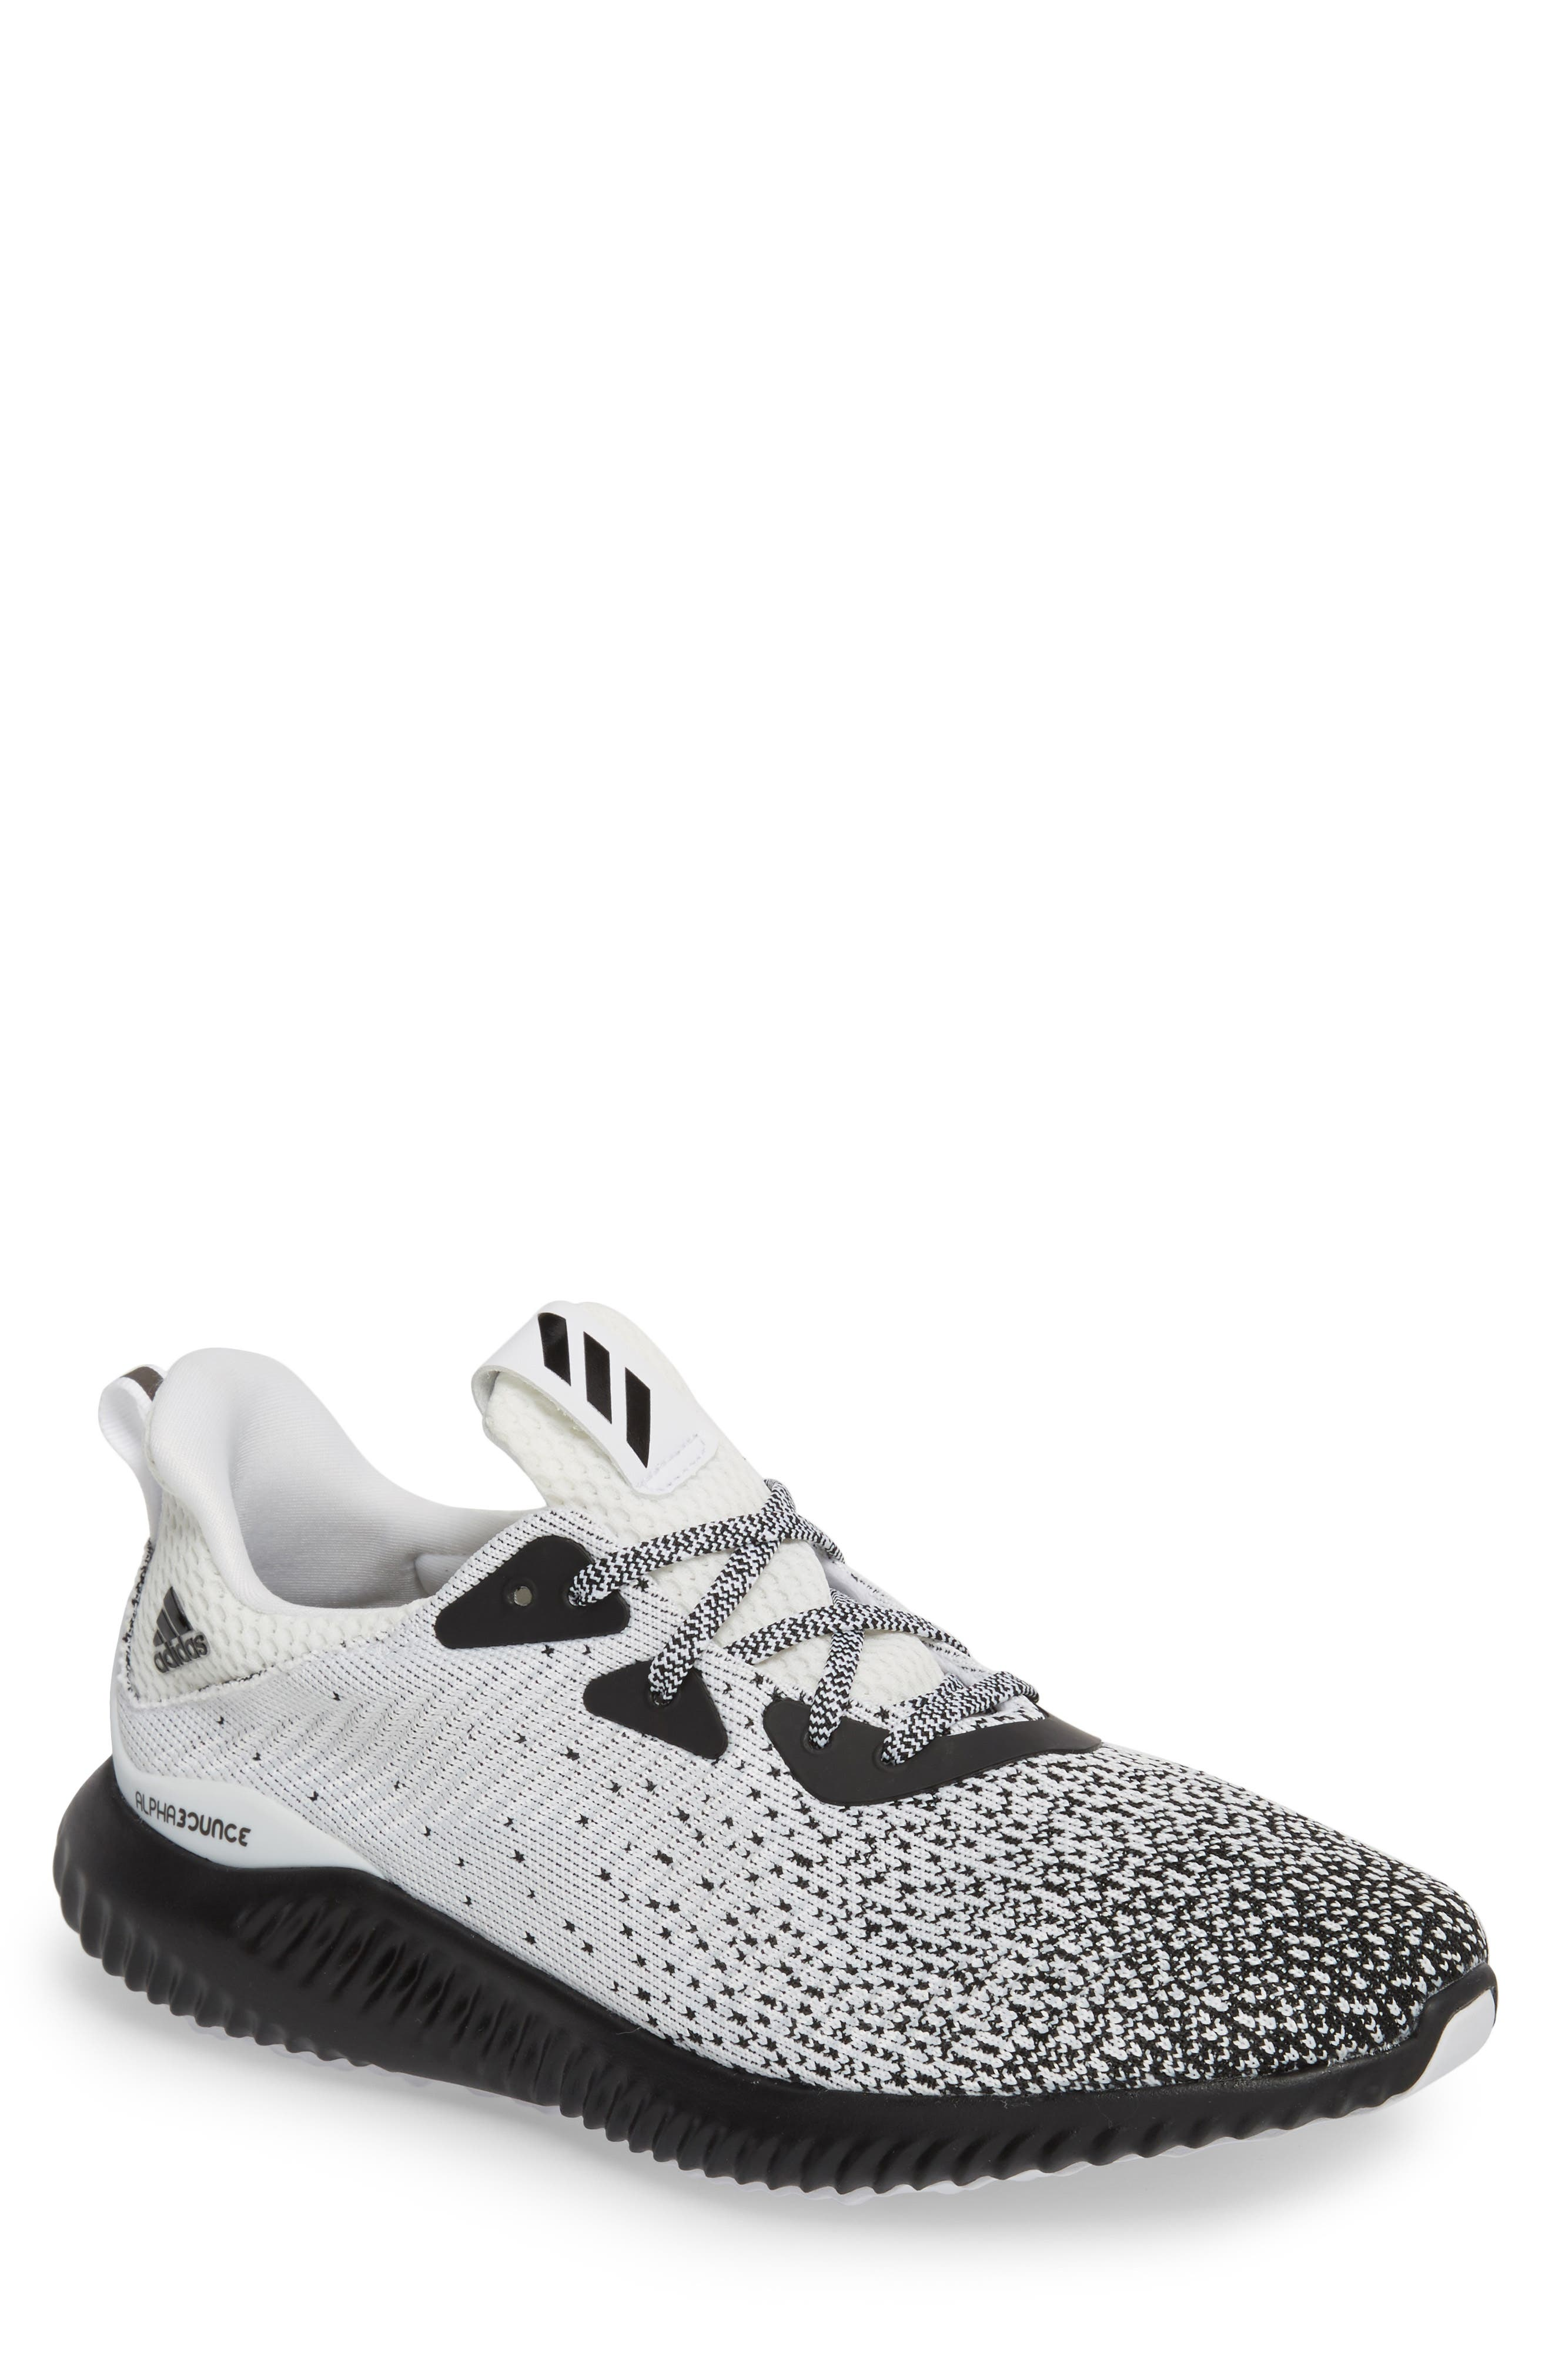 AlphaBounce CK Running Shoe,                         Main,                         color, Core Black / White / Black